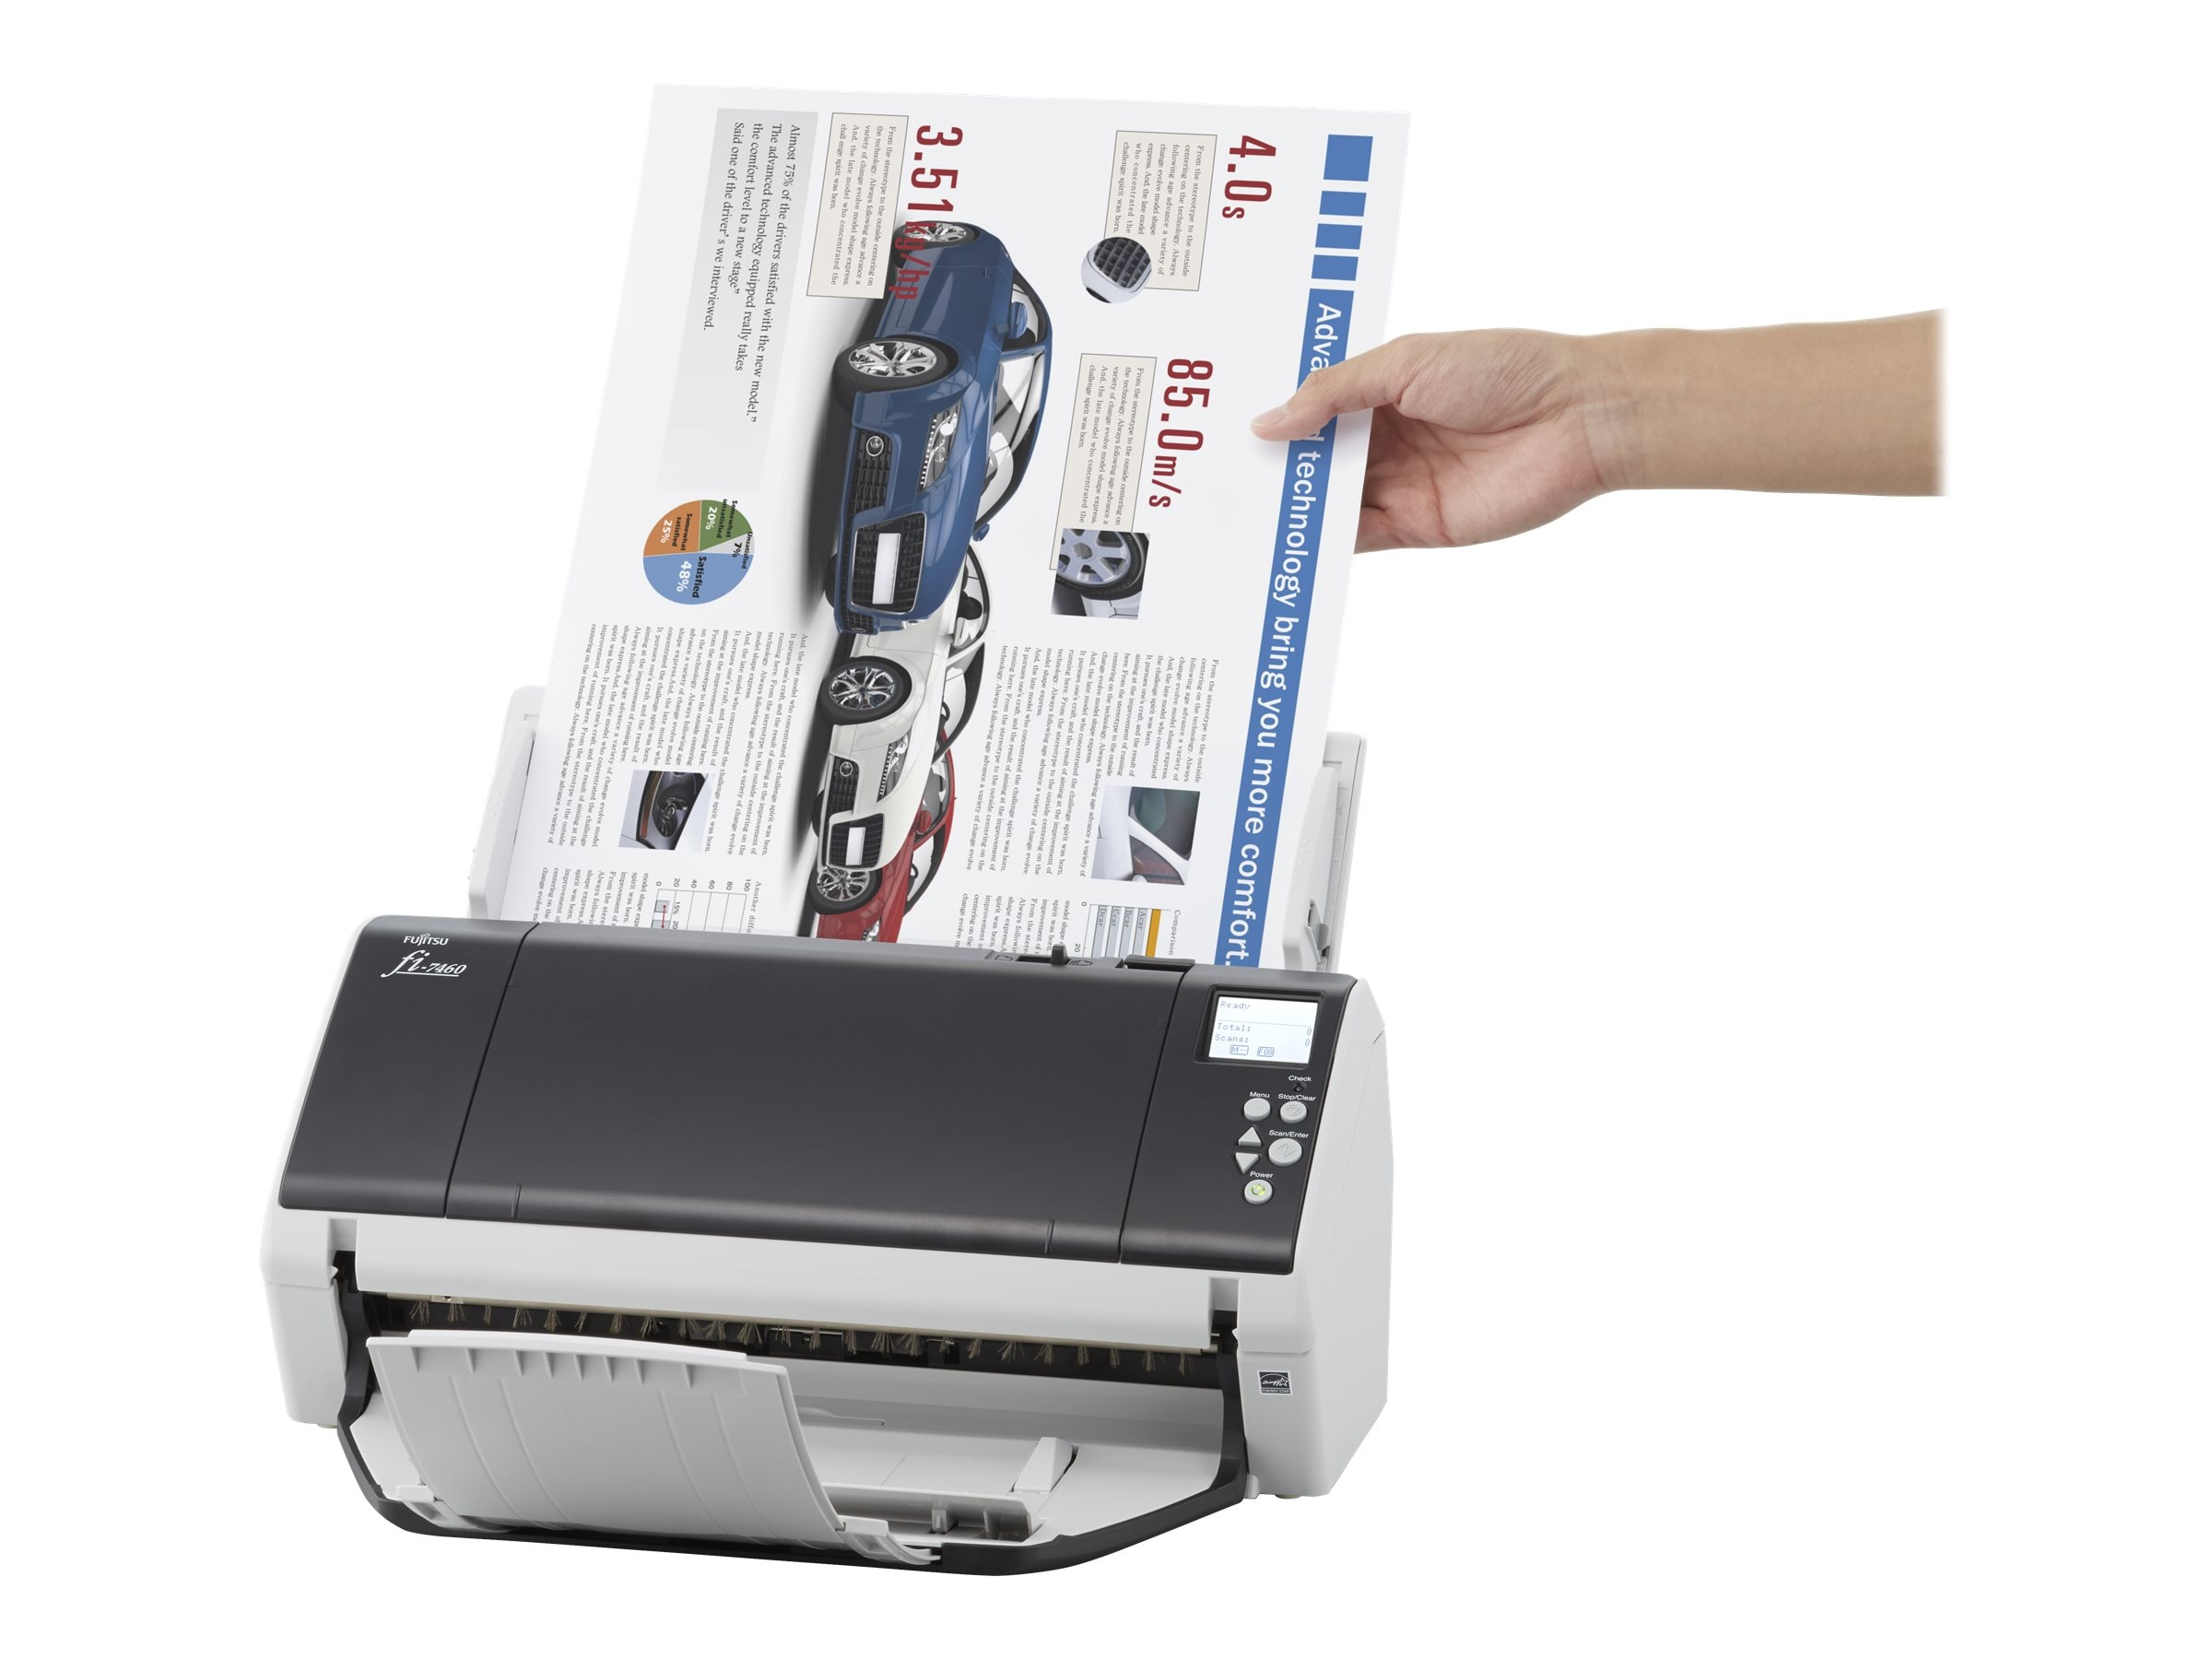 Fujitsu FI-7460 Departmental Scanner PSIP 60ppm 120ipm 100-Page ADF USB 3.0